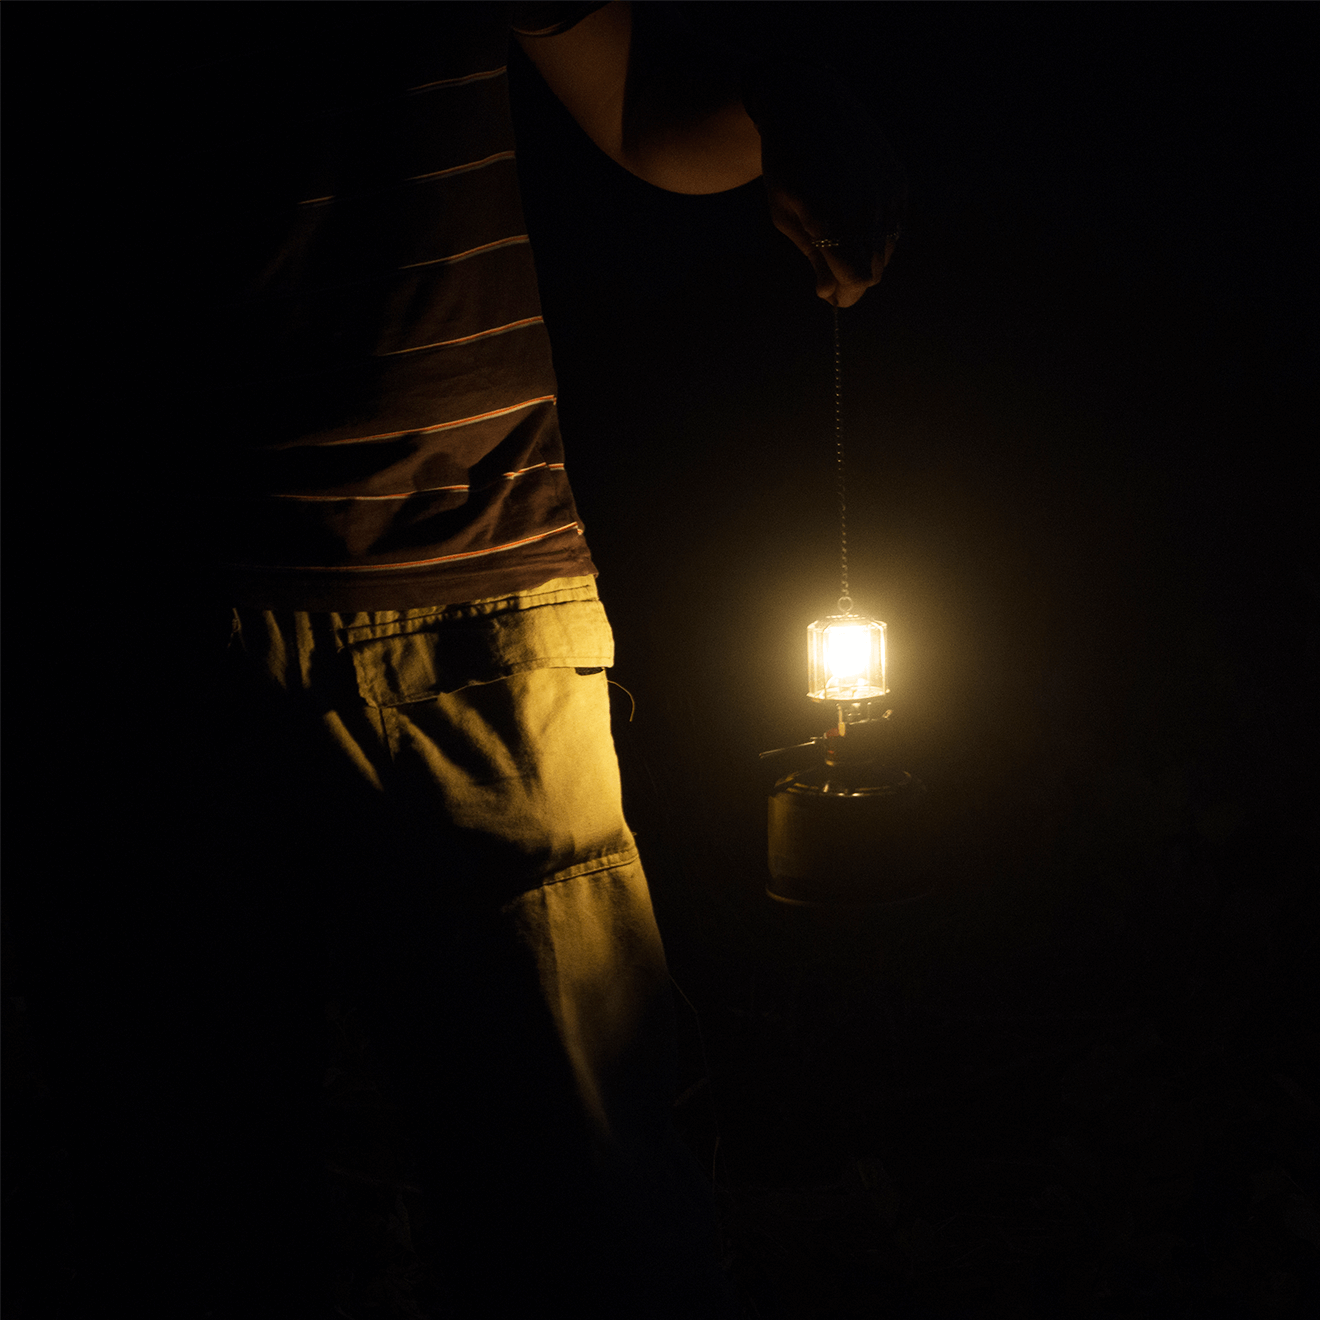 man holding gaslight dark background